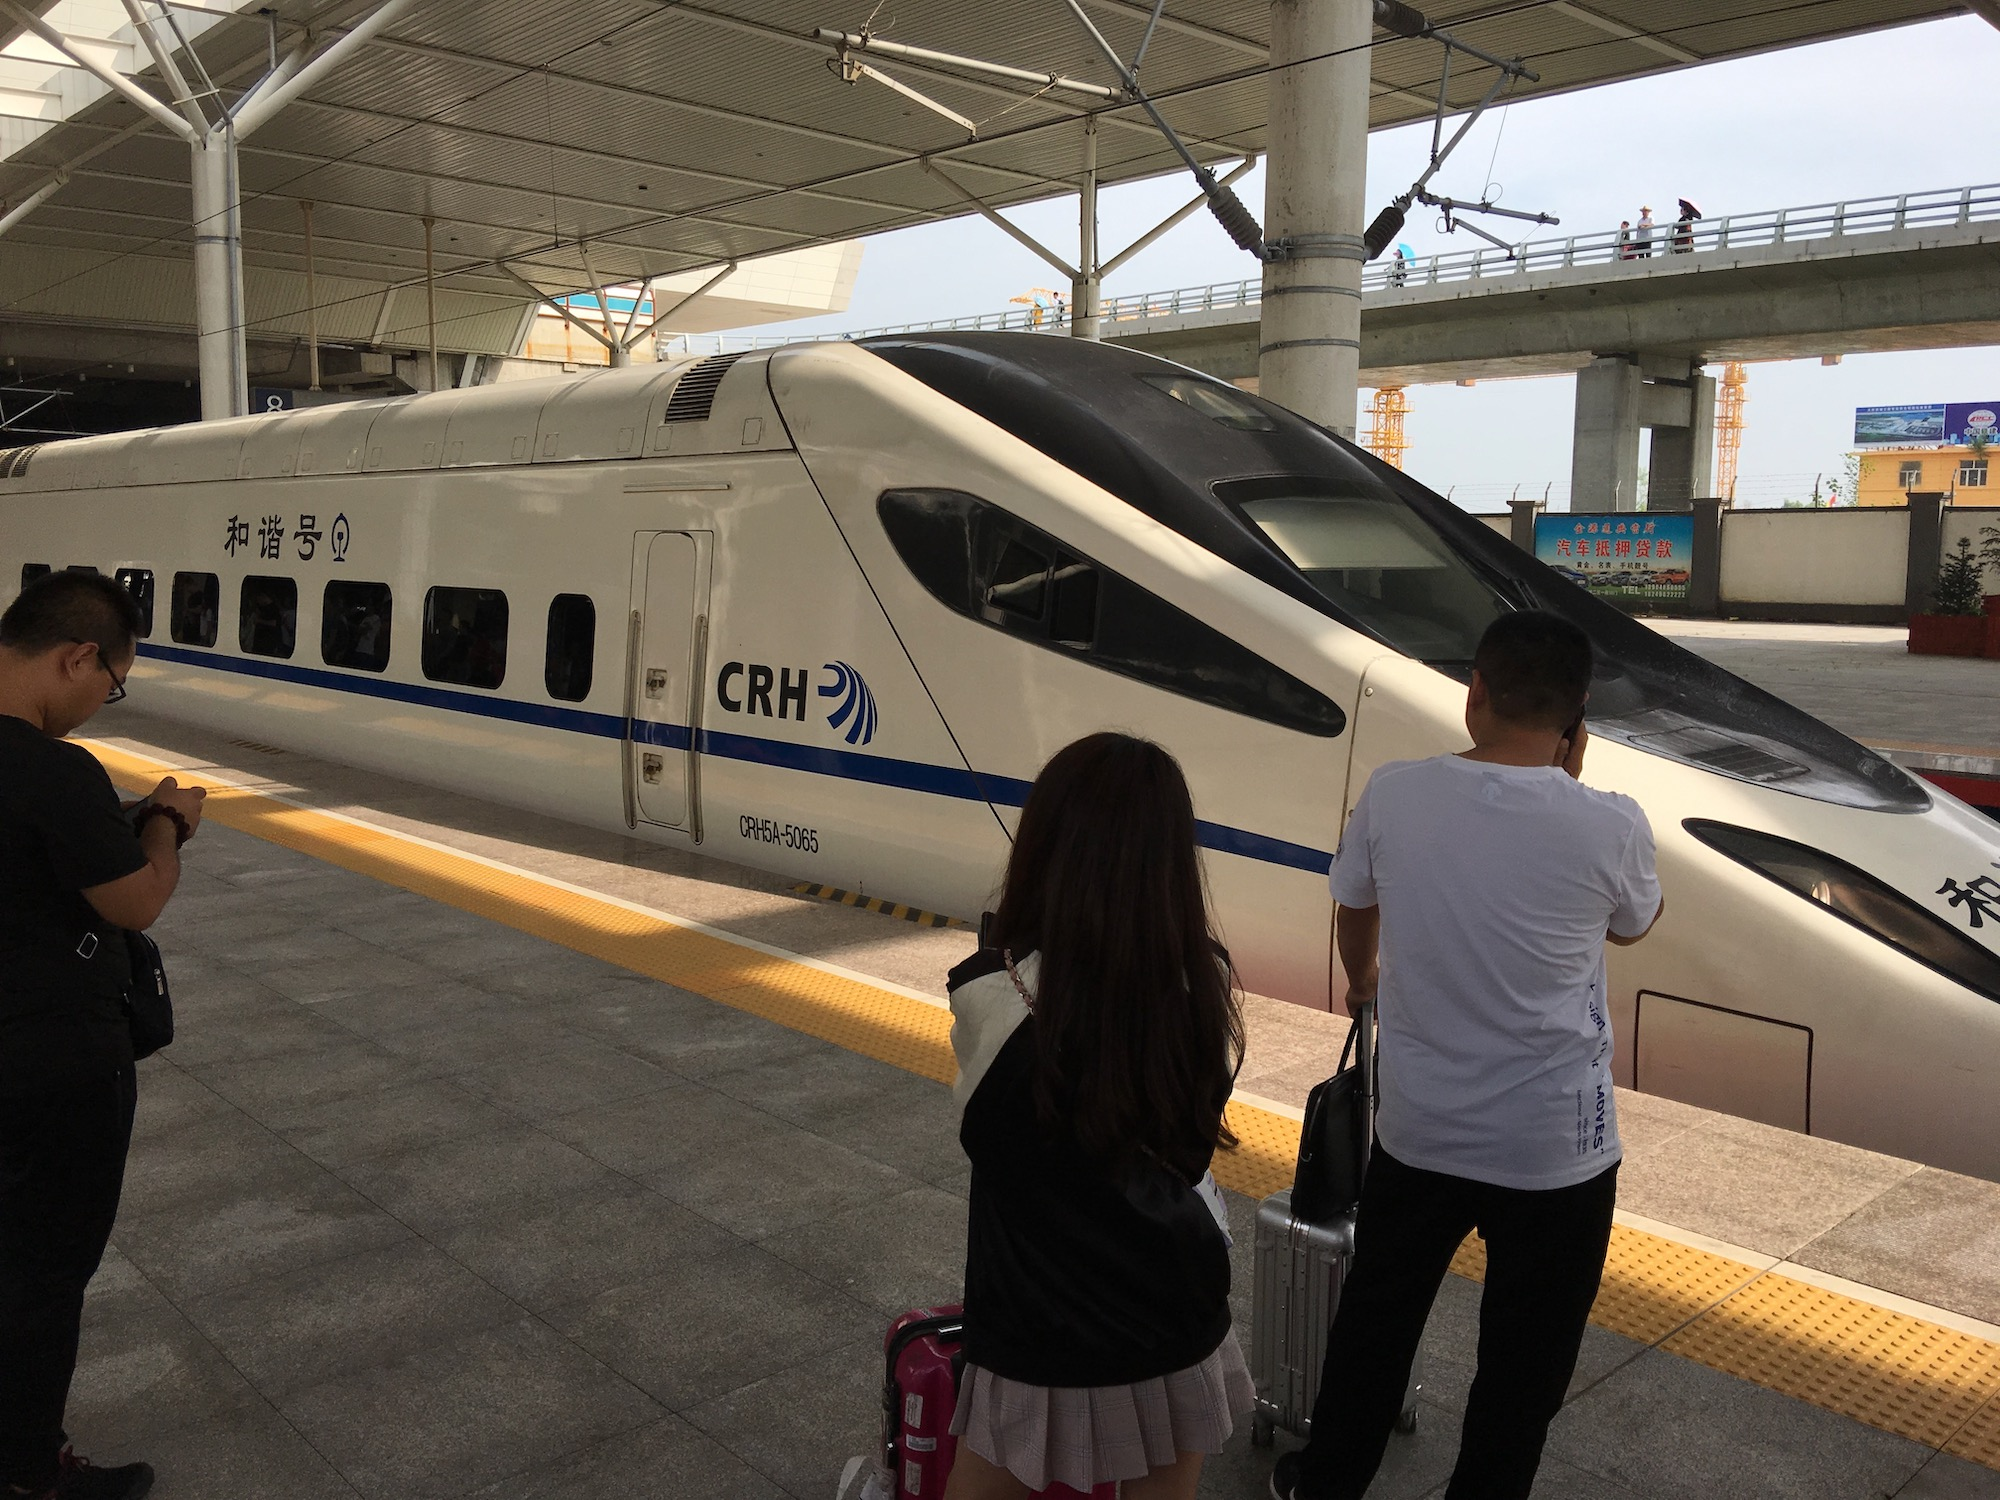 The bullet train is the way to travel within China. I much prefer it to flying if I've got the time.